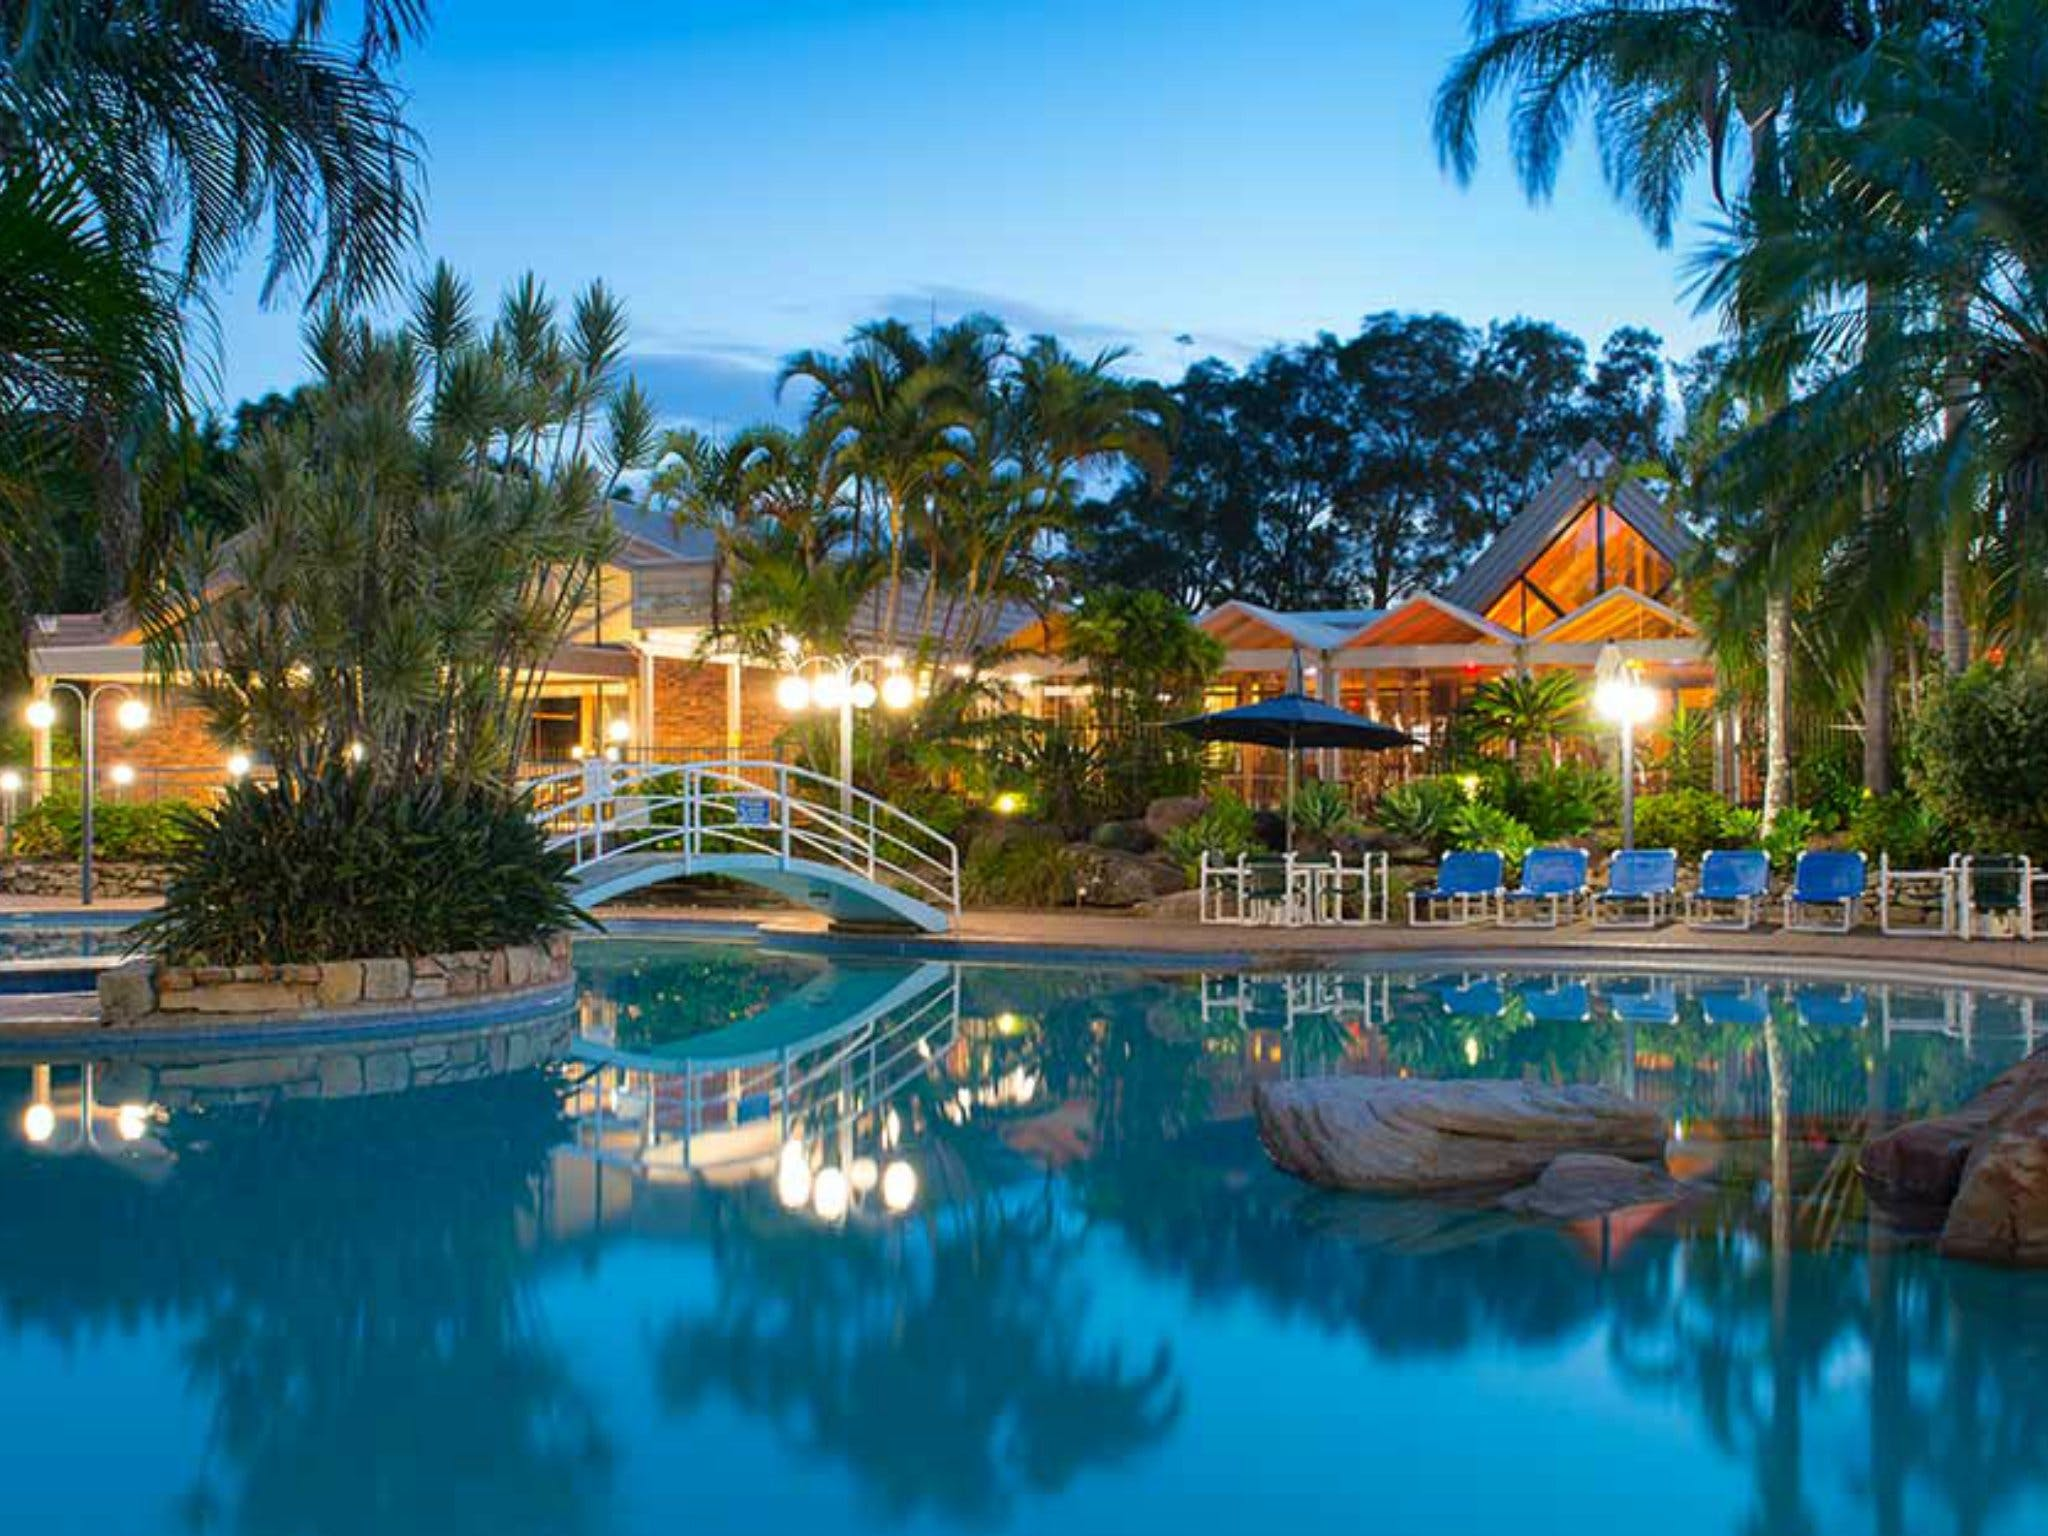 Boambee Bay Resort - Accommodation Cooktown